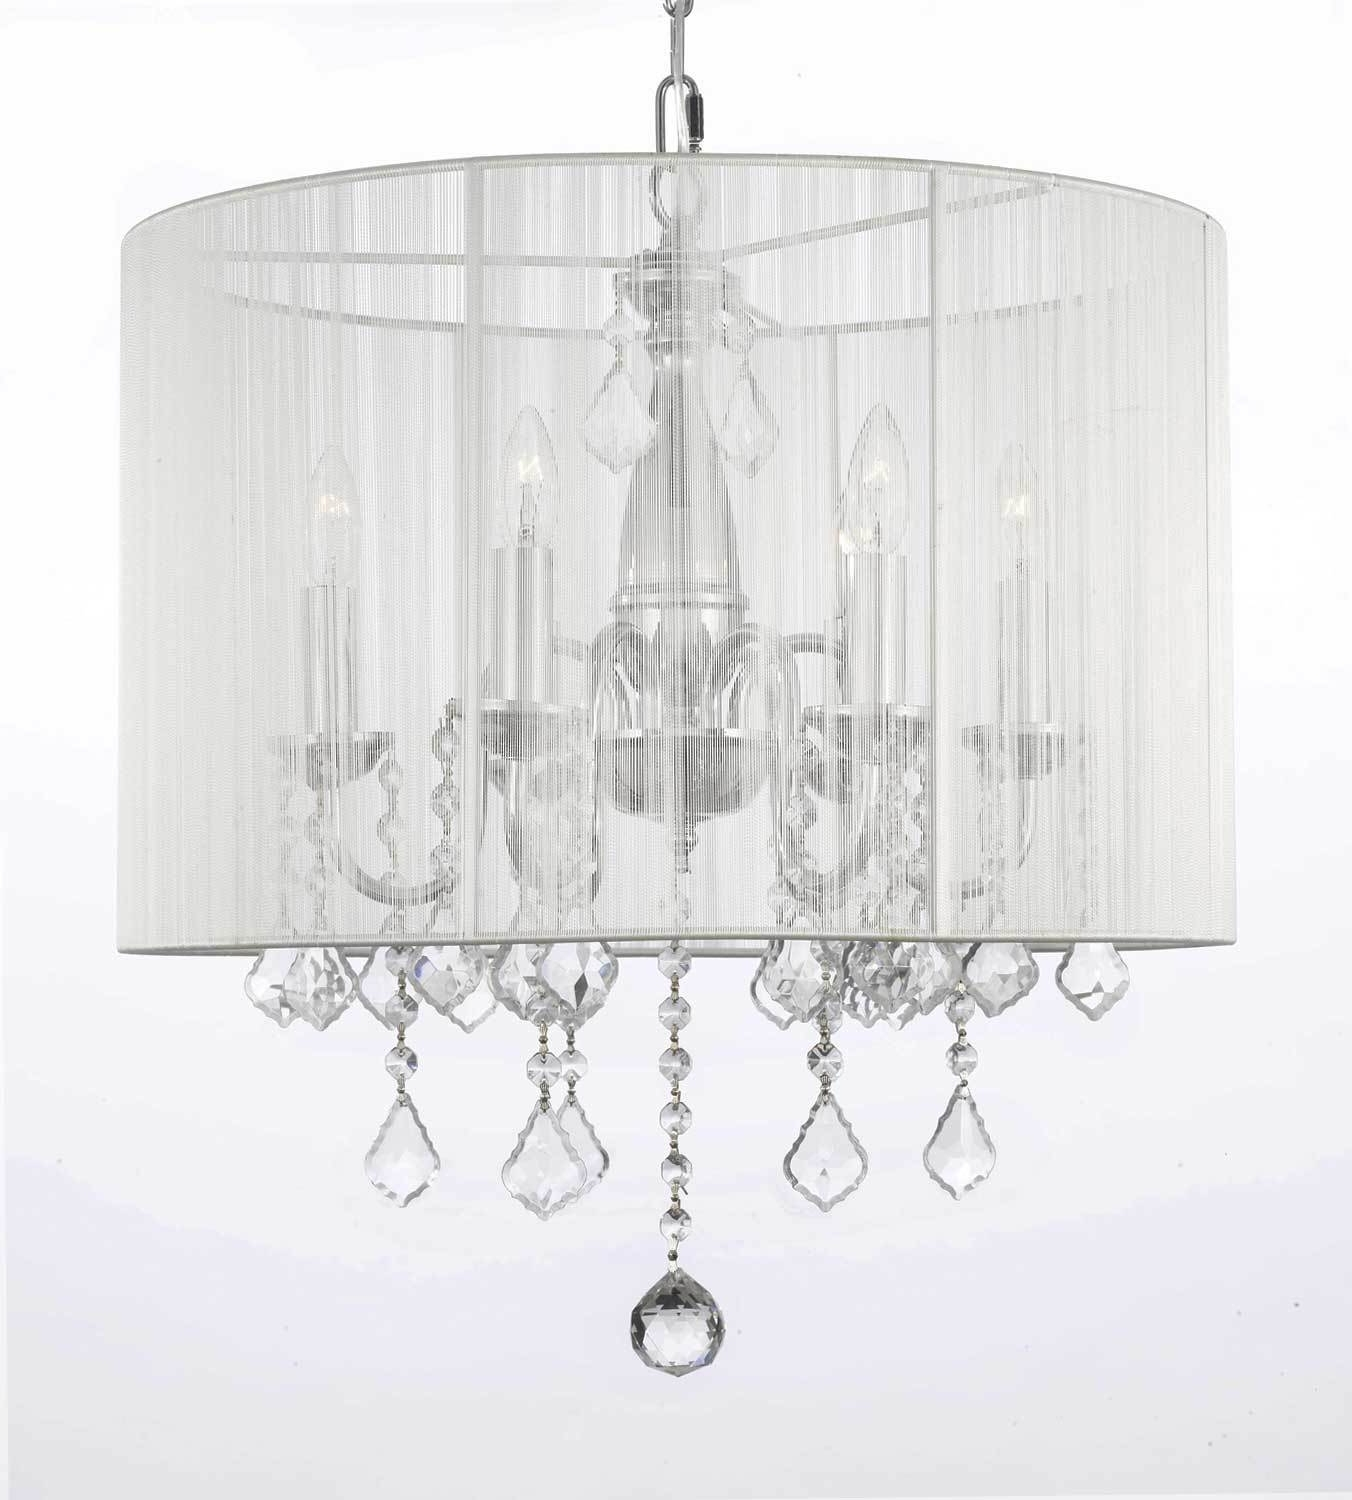 Best And Newest Attractive White Chandelier With Shades G7 11266 Gallery Chandeliers Throughout Crystal Chandeliers With Shades (View 9 of 20)